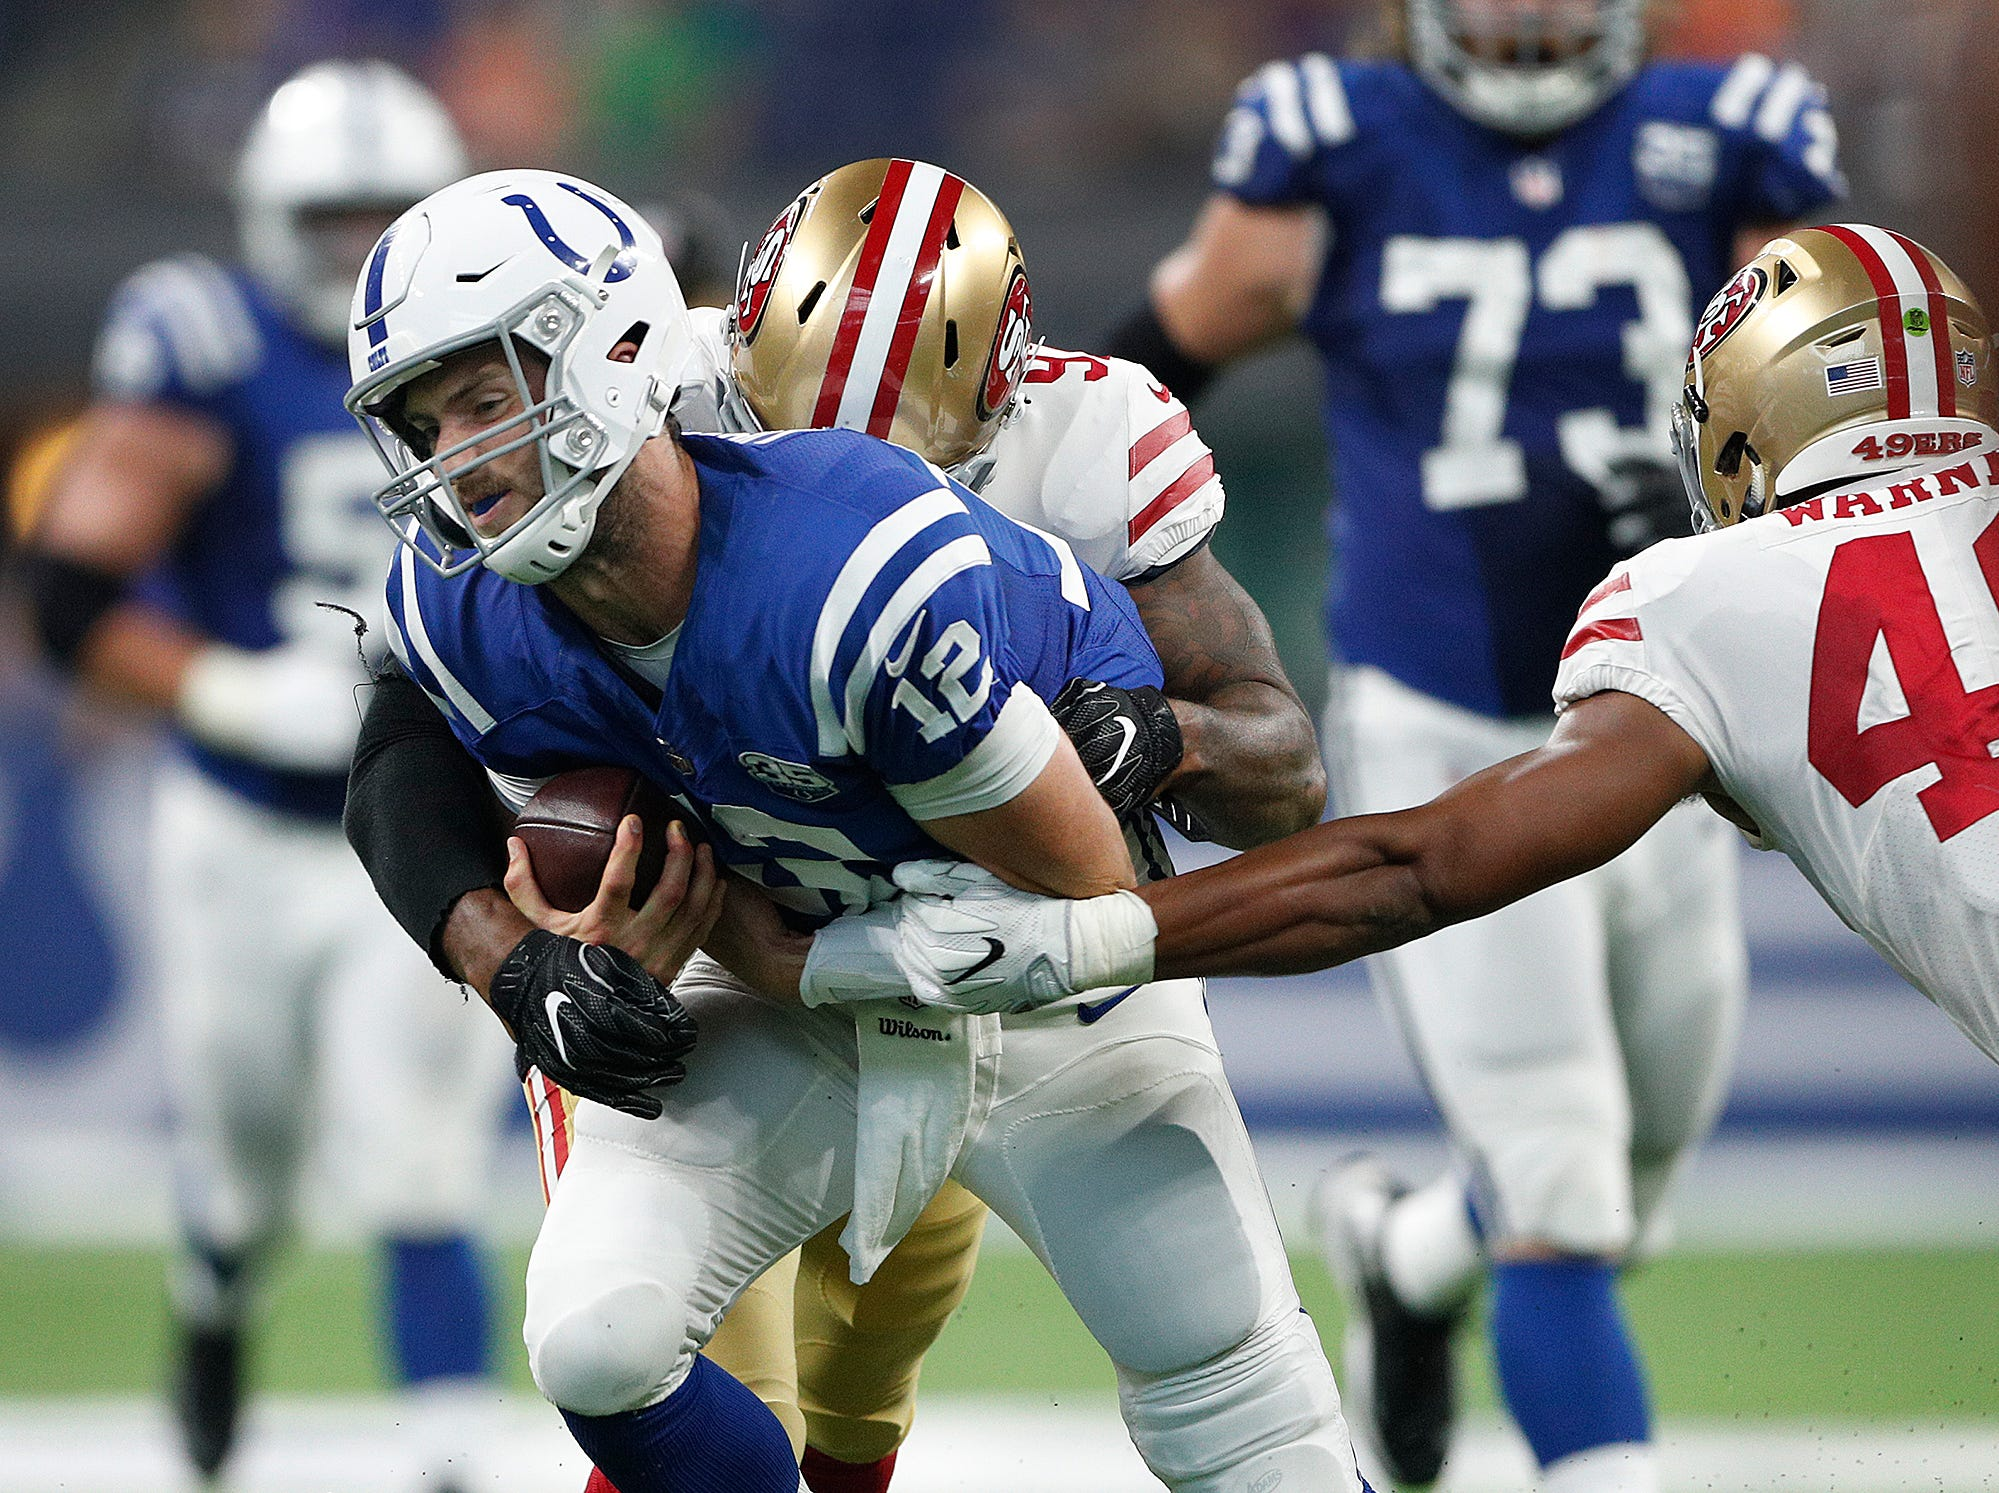 Indianapolis Colts quarterback Andrew Luck (12) is tackled by San Francisco 49ers linebacker Dekoda Watson (97) after running for a first down in the first half of their preseason football game at Lucas Oil Stadium Saturday, August 25, 2018.